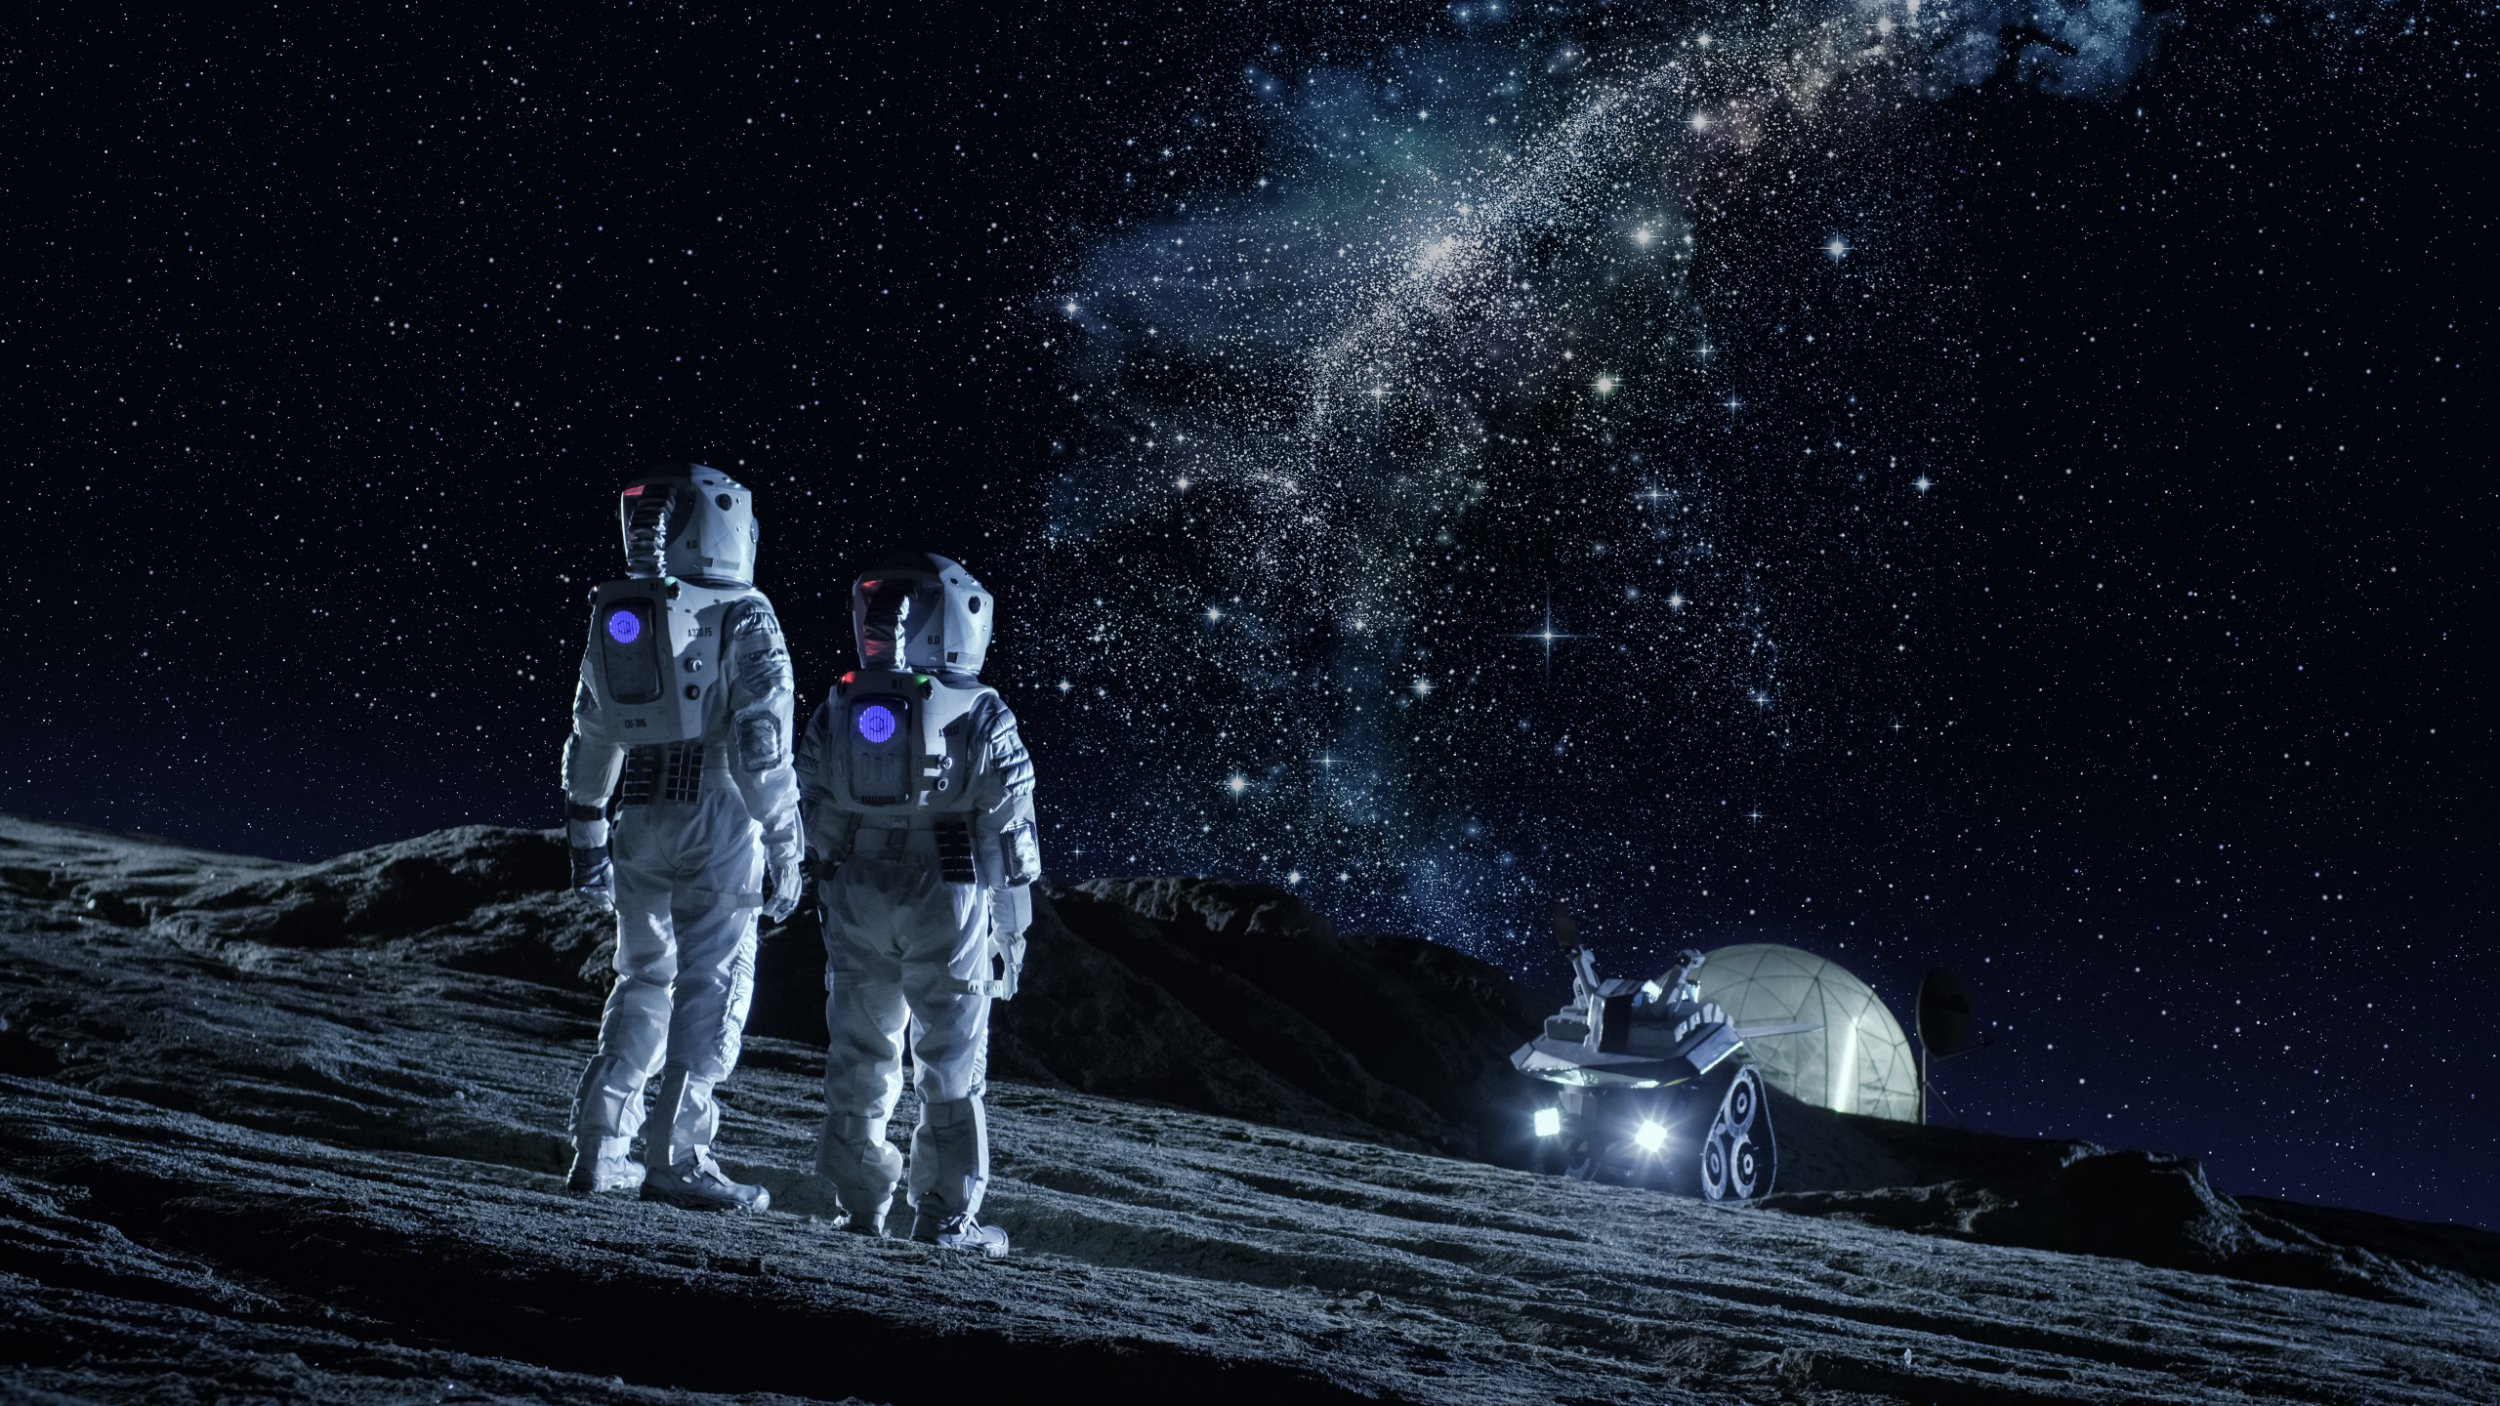 Two Astronauts in Space Suits Stand on a Planet and Looking during a The Milky Way Galaxy. In a Background Lunar Base with Geodesic Dome. Moon Colonization and Space Travel Concept.